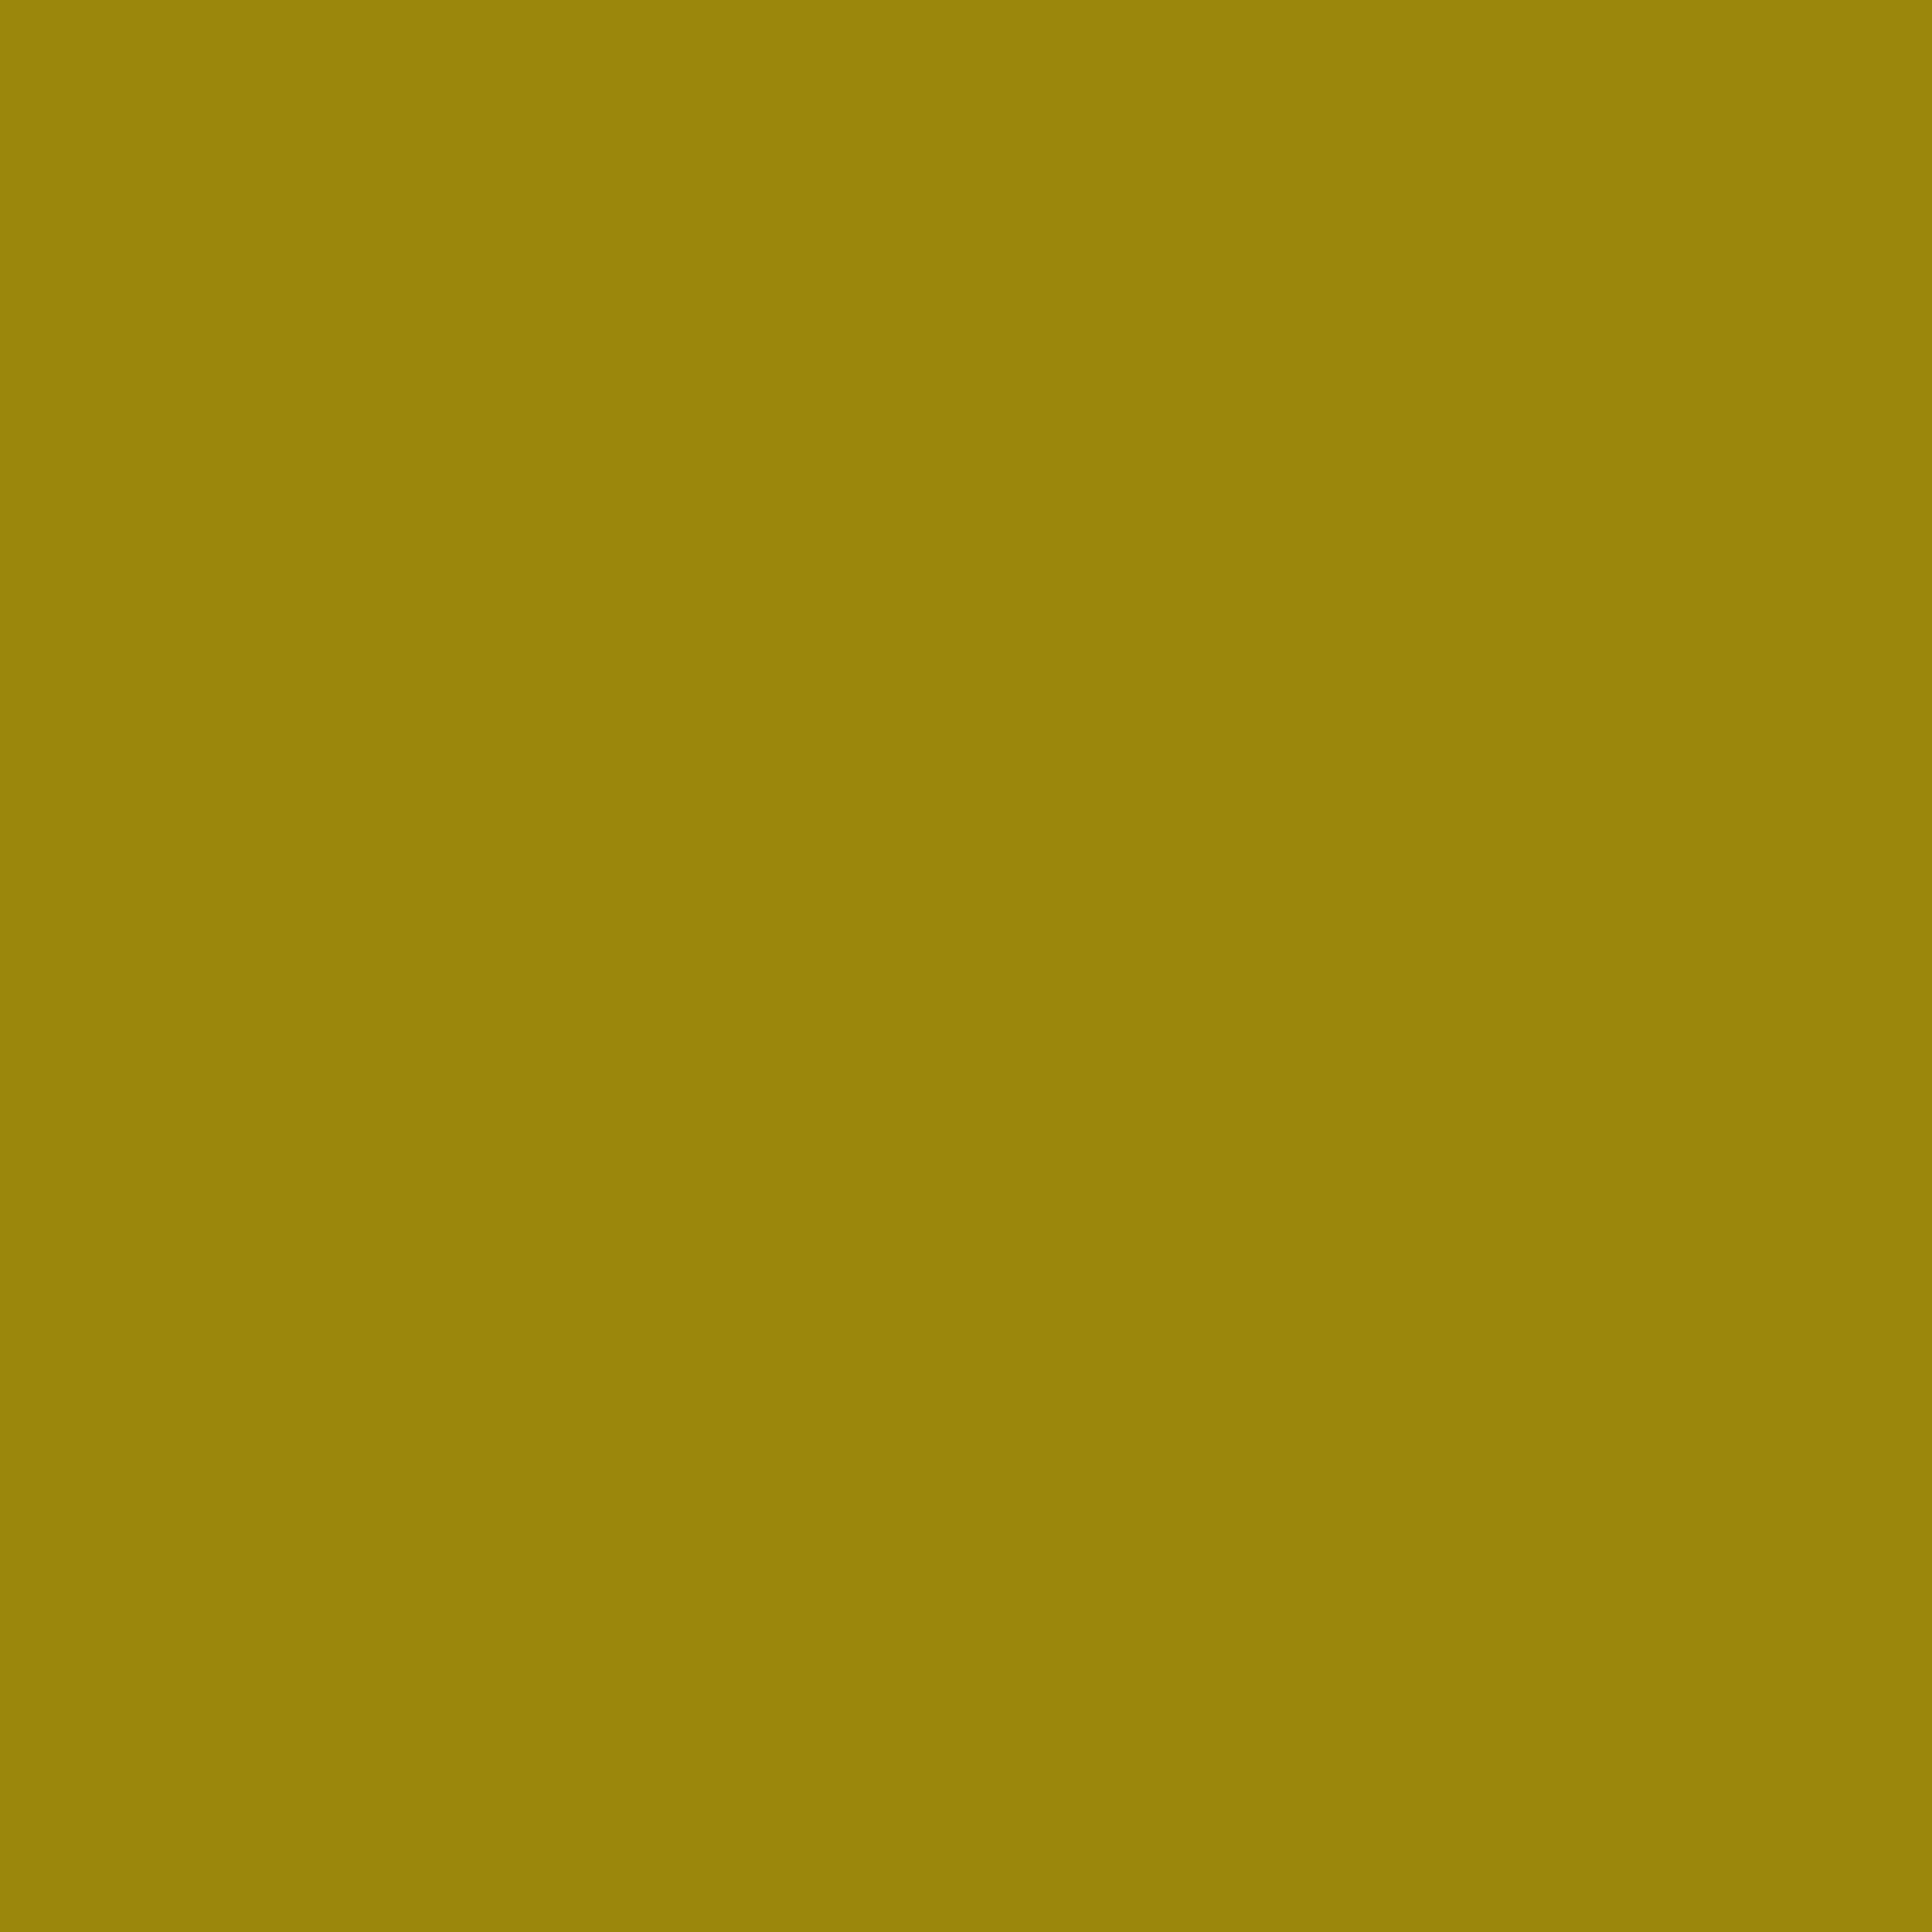 2048x2048 Dark Yellow Solid Color Background